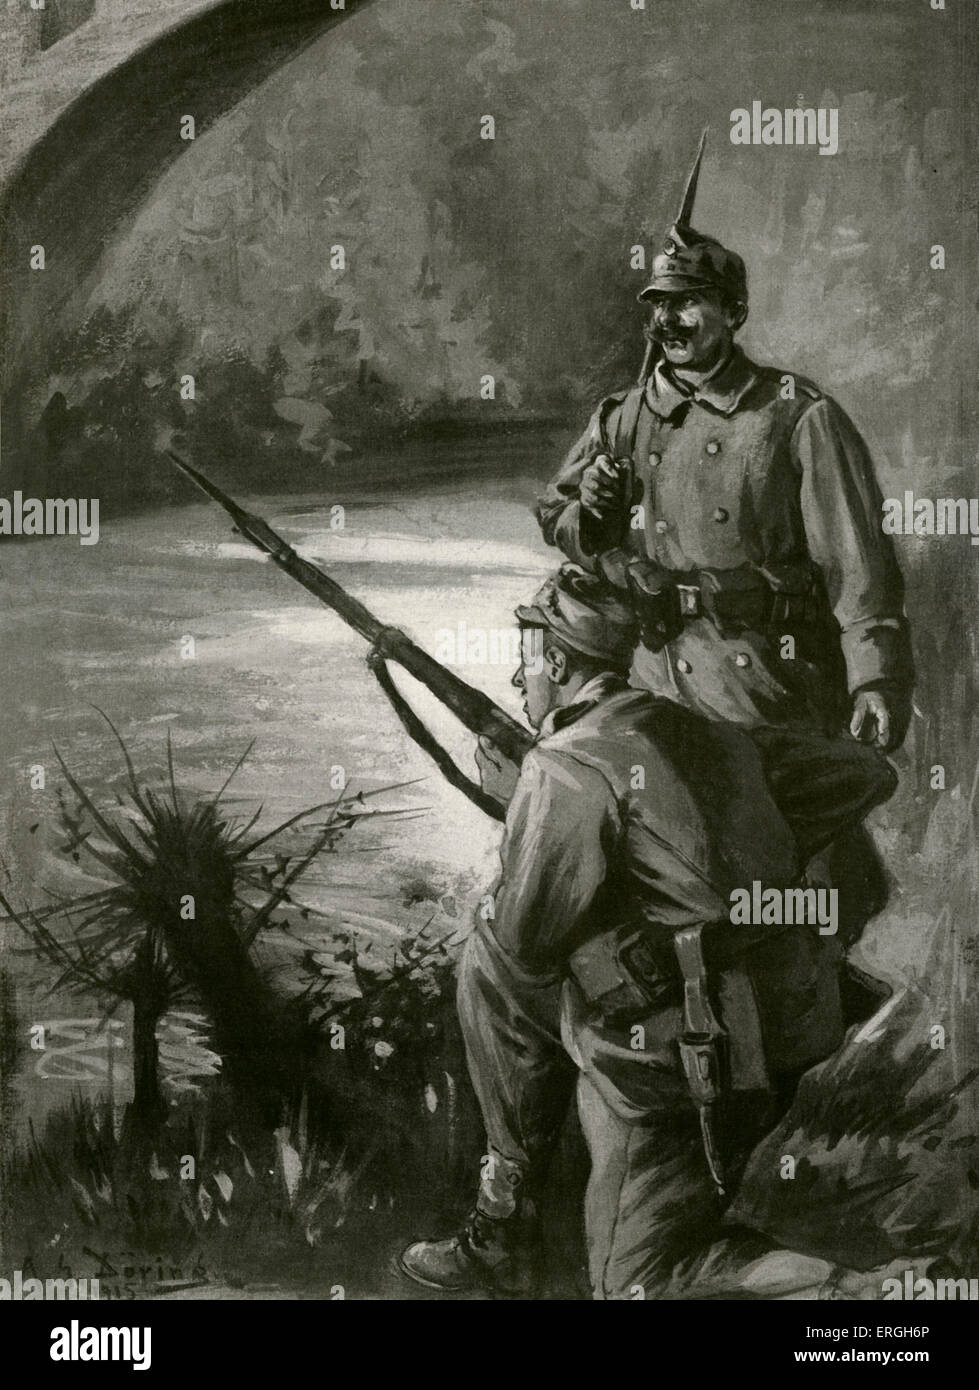 World War 1: 3rd Offensive of Battles of the Isonzo. Two Austro- Hungarian soldiers keeping watch.  Illustration Stock Photo